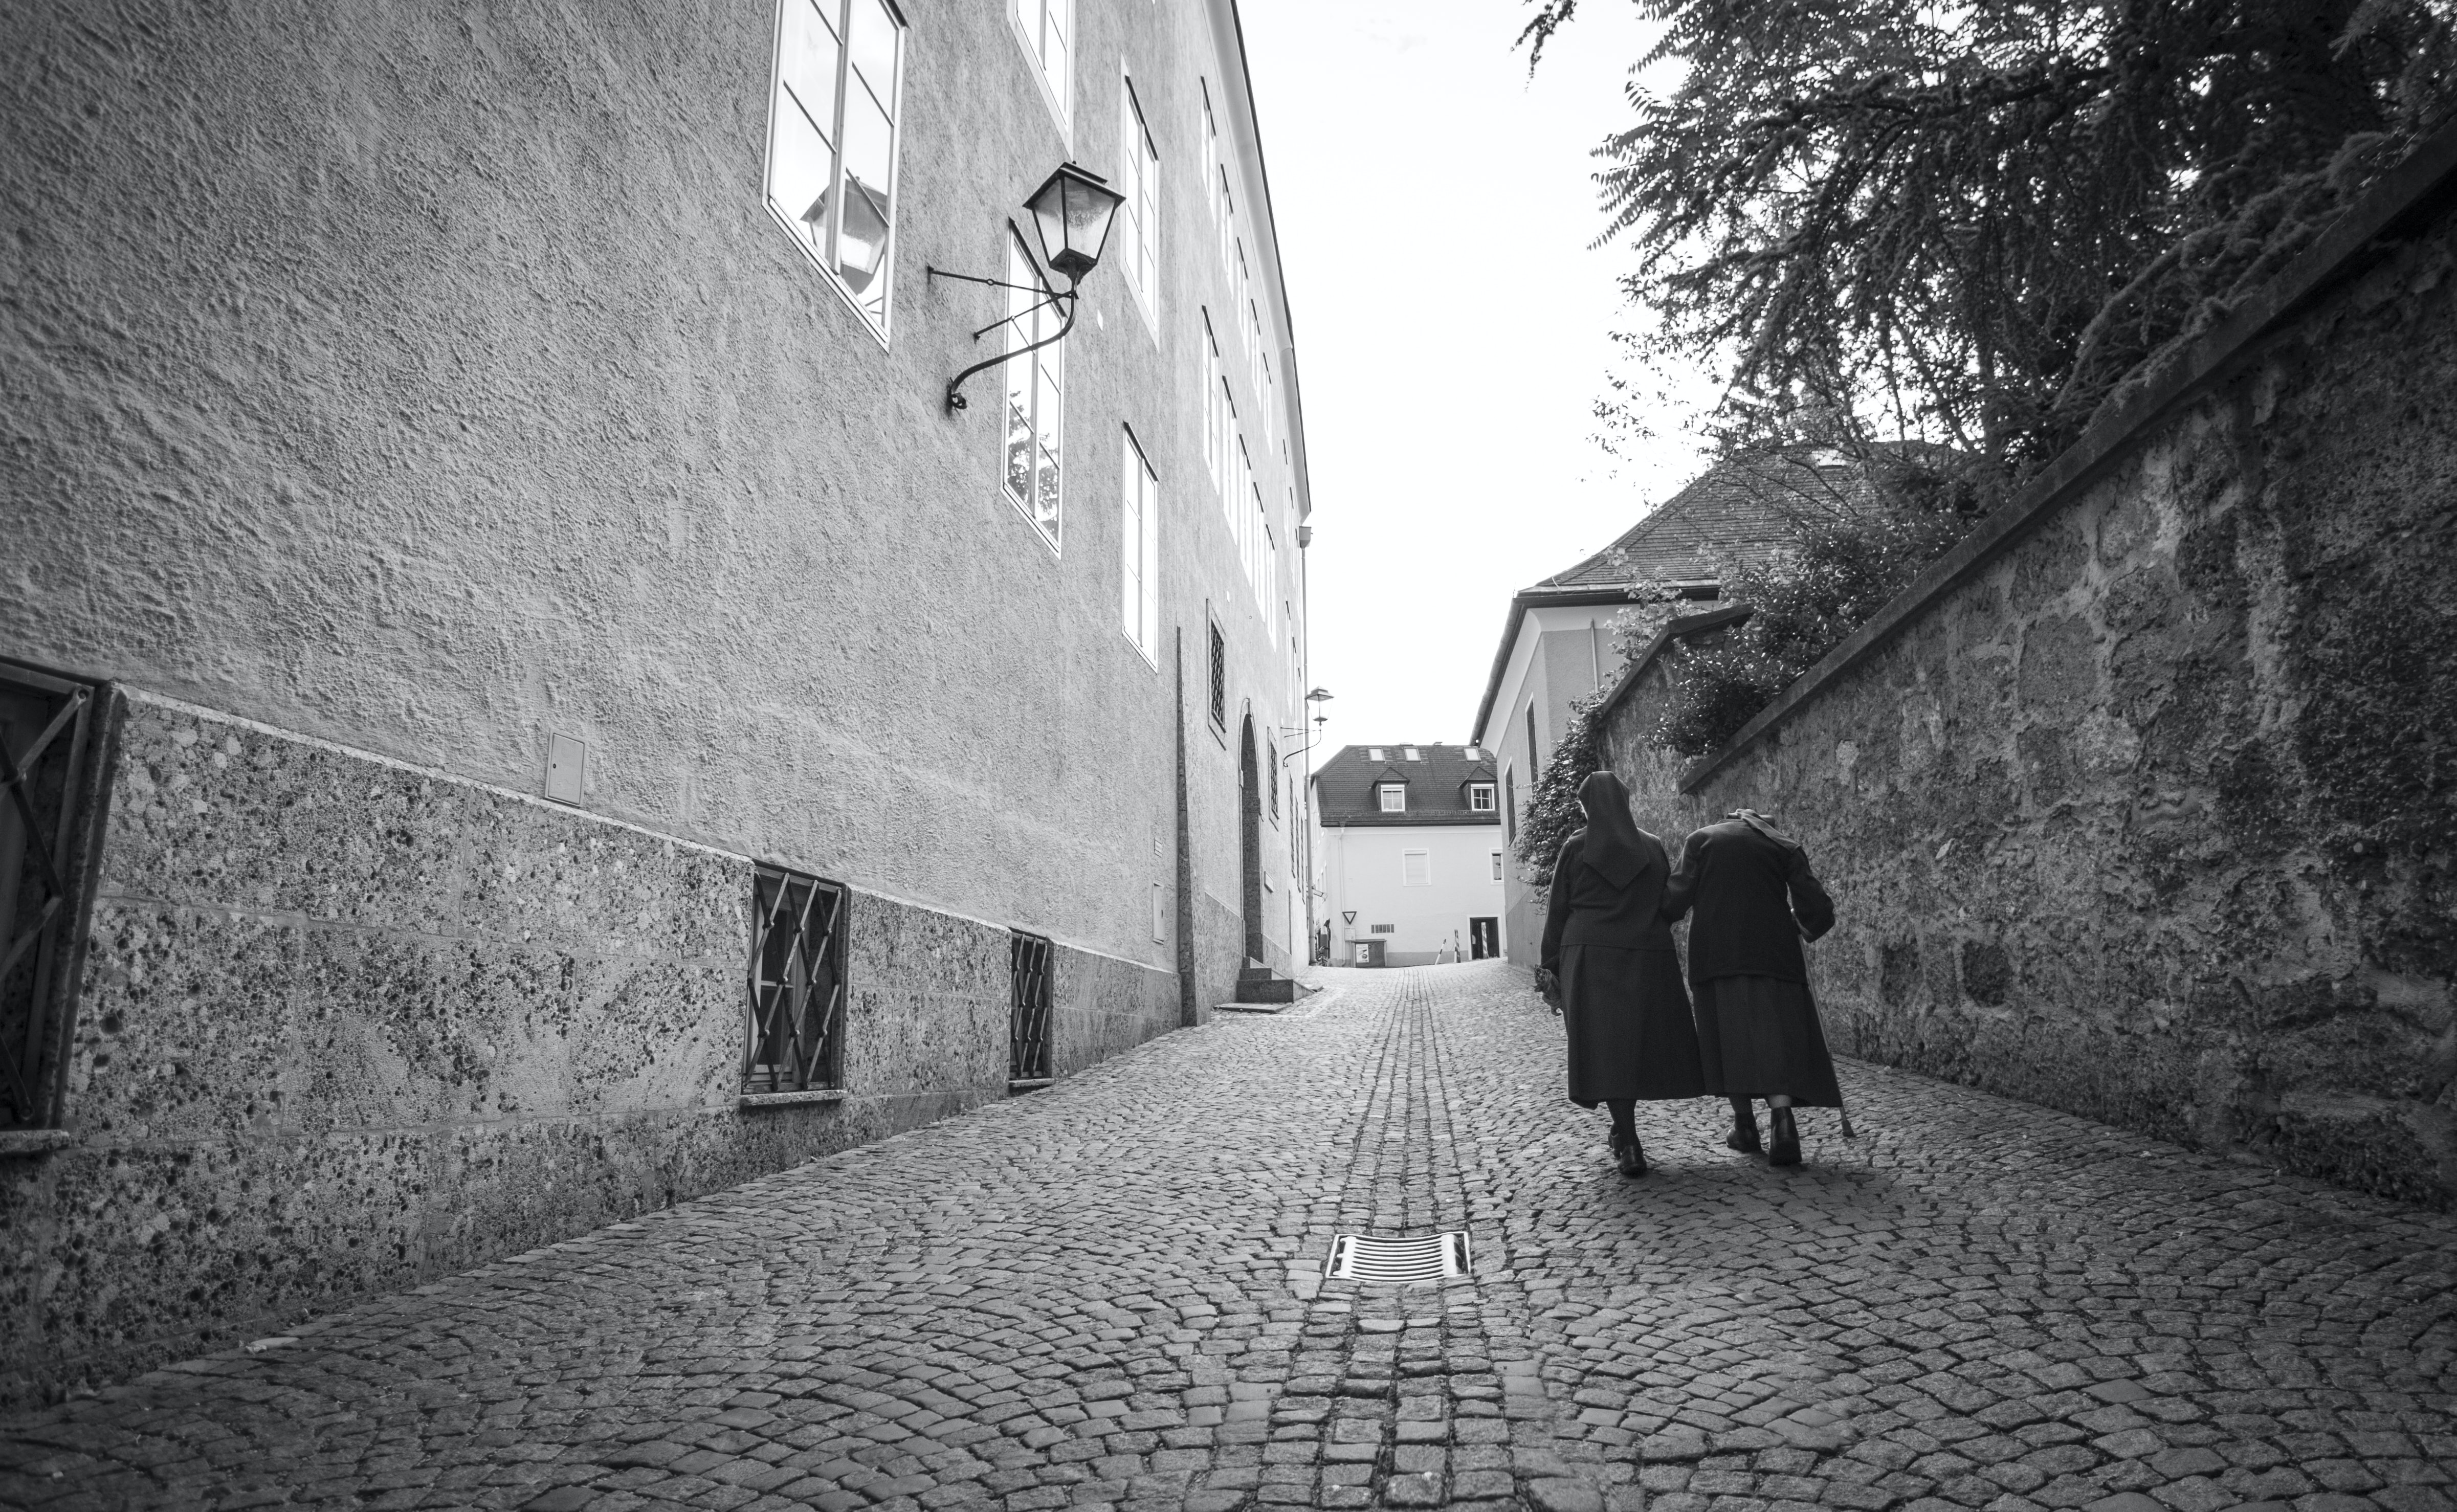 grayscale photo of two persons walking upward